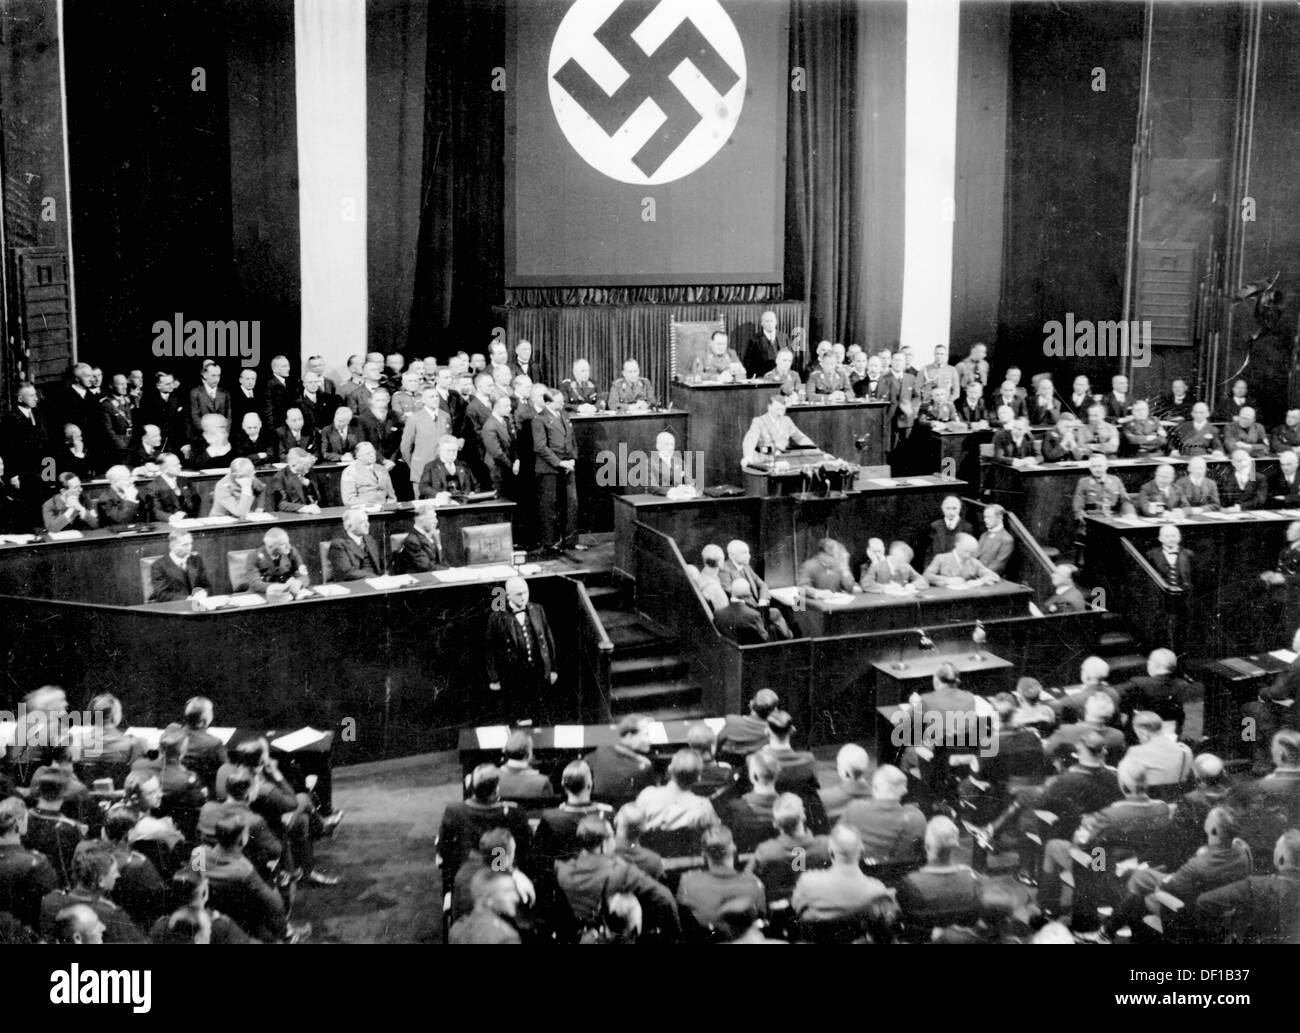 nazi germany propaganda speech Joseph goebbels , the head of nazi germany's ministry of public enlightenment and propaganda the propaganda used by the german nazi party in the years leading up to and during adolf hitler 's leadership of germany (1933–1945) was a crucial instrument for acquiring and maintaining power, and for the implementation of nazi policies.